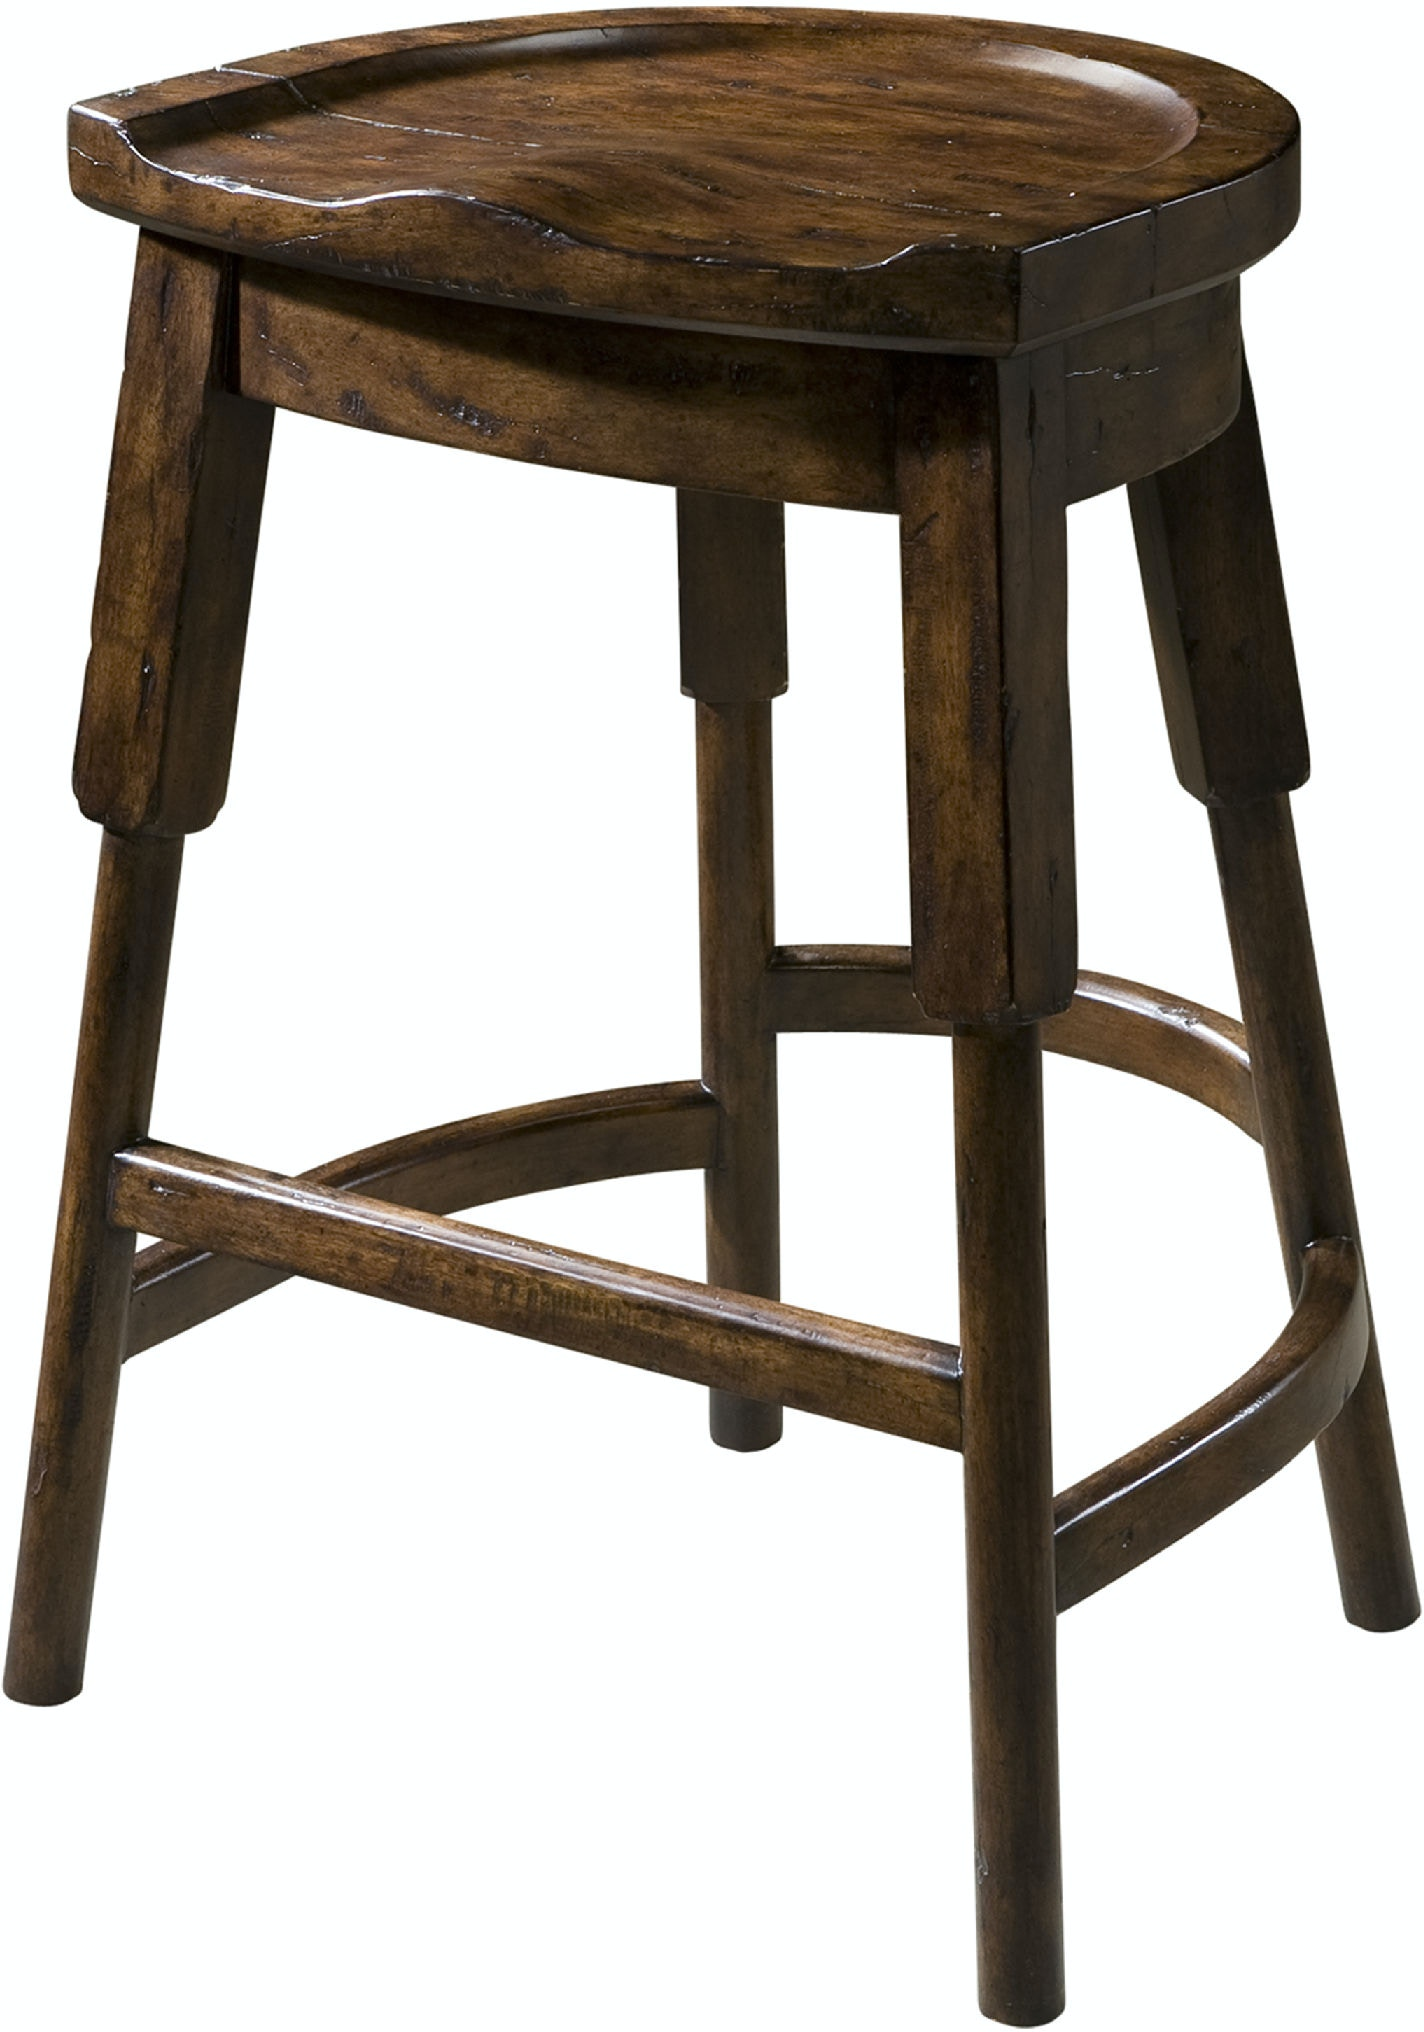 Theodore Alexander Bar And Game Room The English Inn Stool